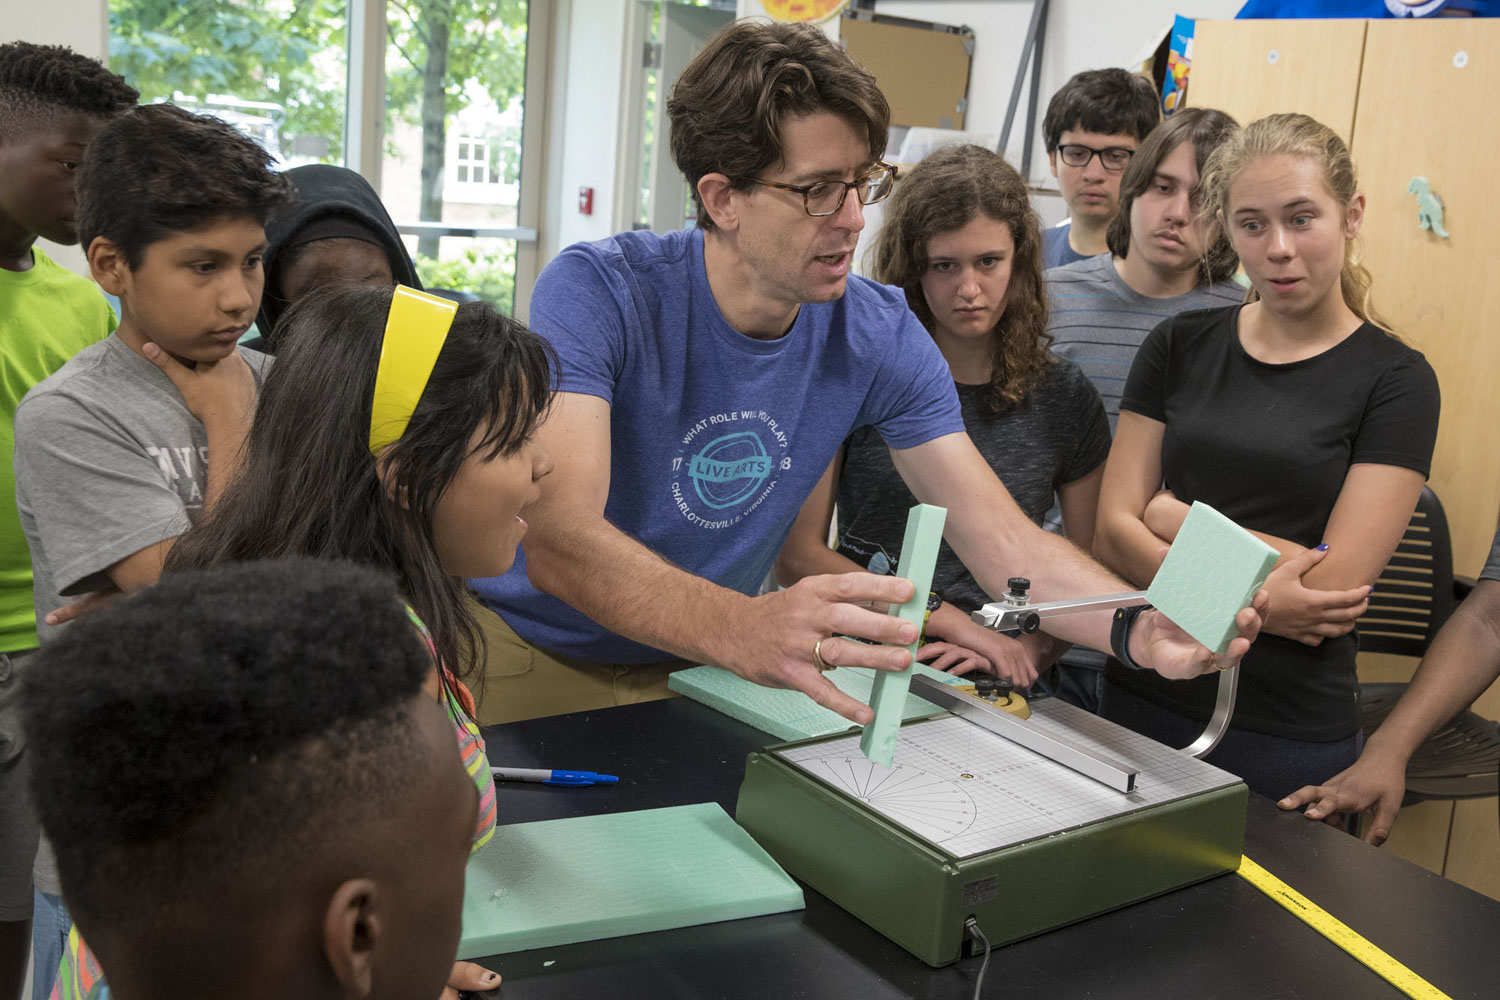 Reid Bailey, a UVA systems and information engineering professor who co-led a summer camp with Computers4Kids, shows youths how to slice foam board for the haunted house.